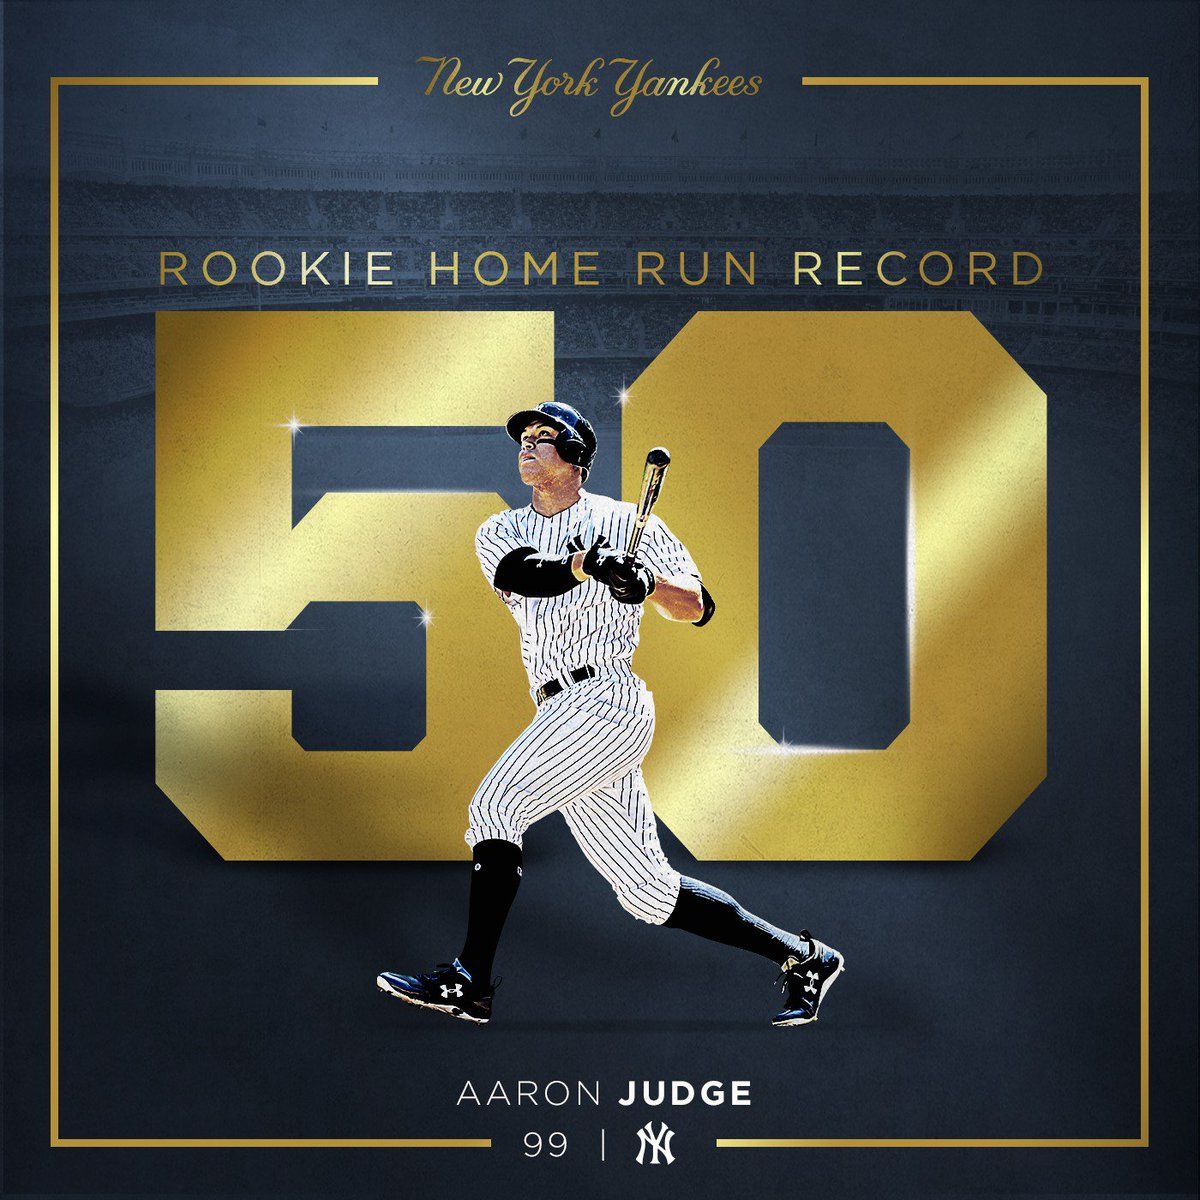 Time to edit the history books!  #AllRise for Aaron Judge – the new record holder for most HR by a rookie!